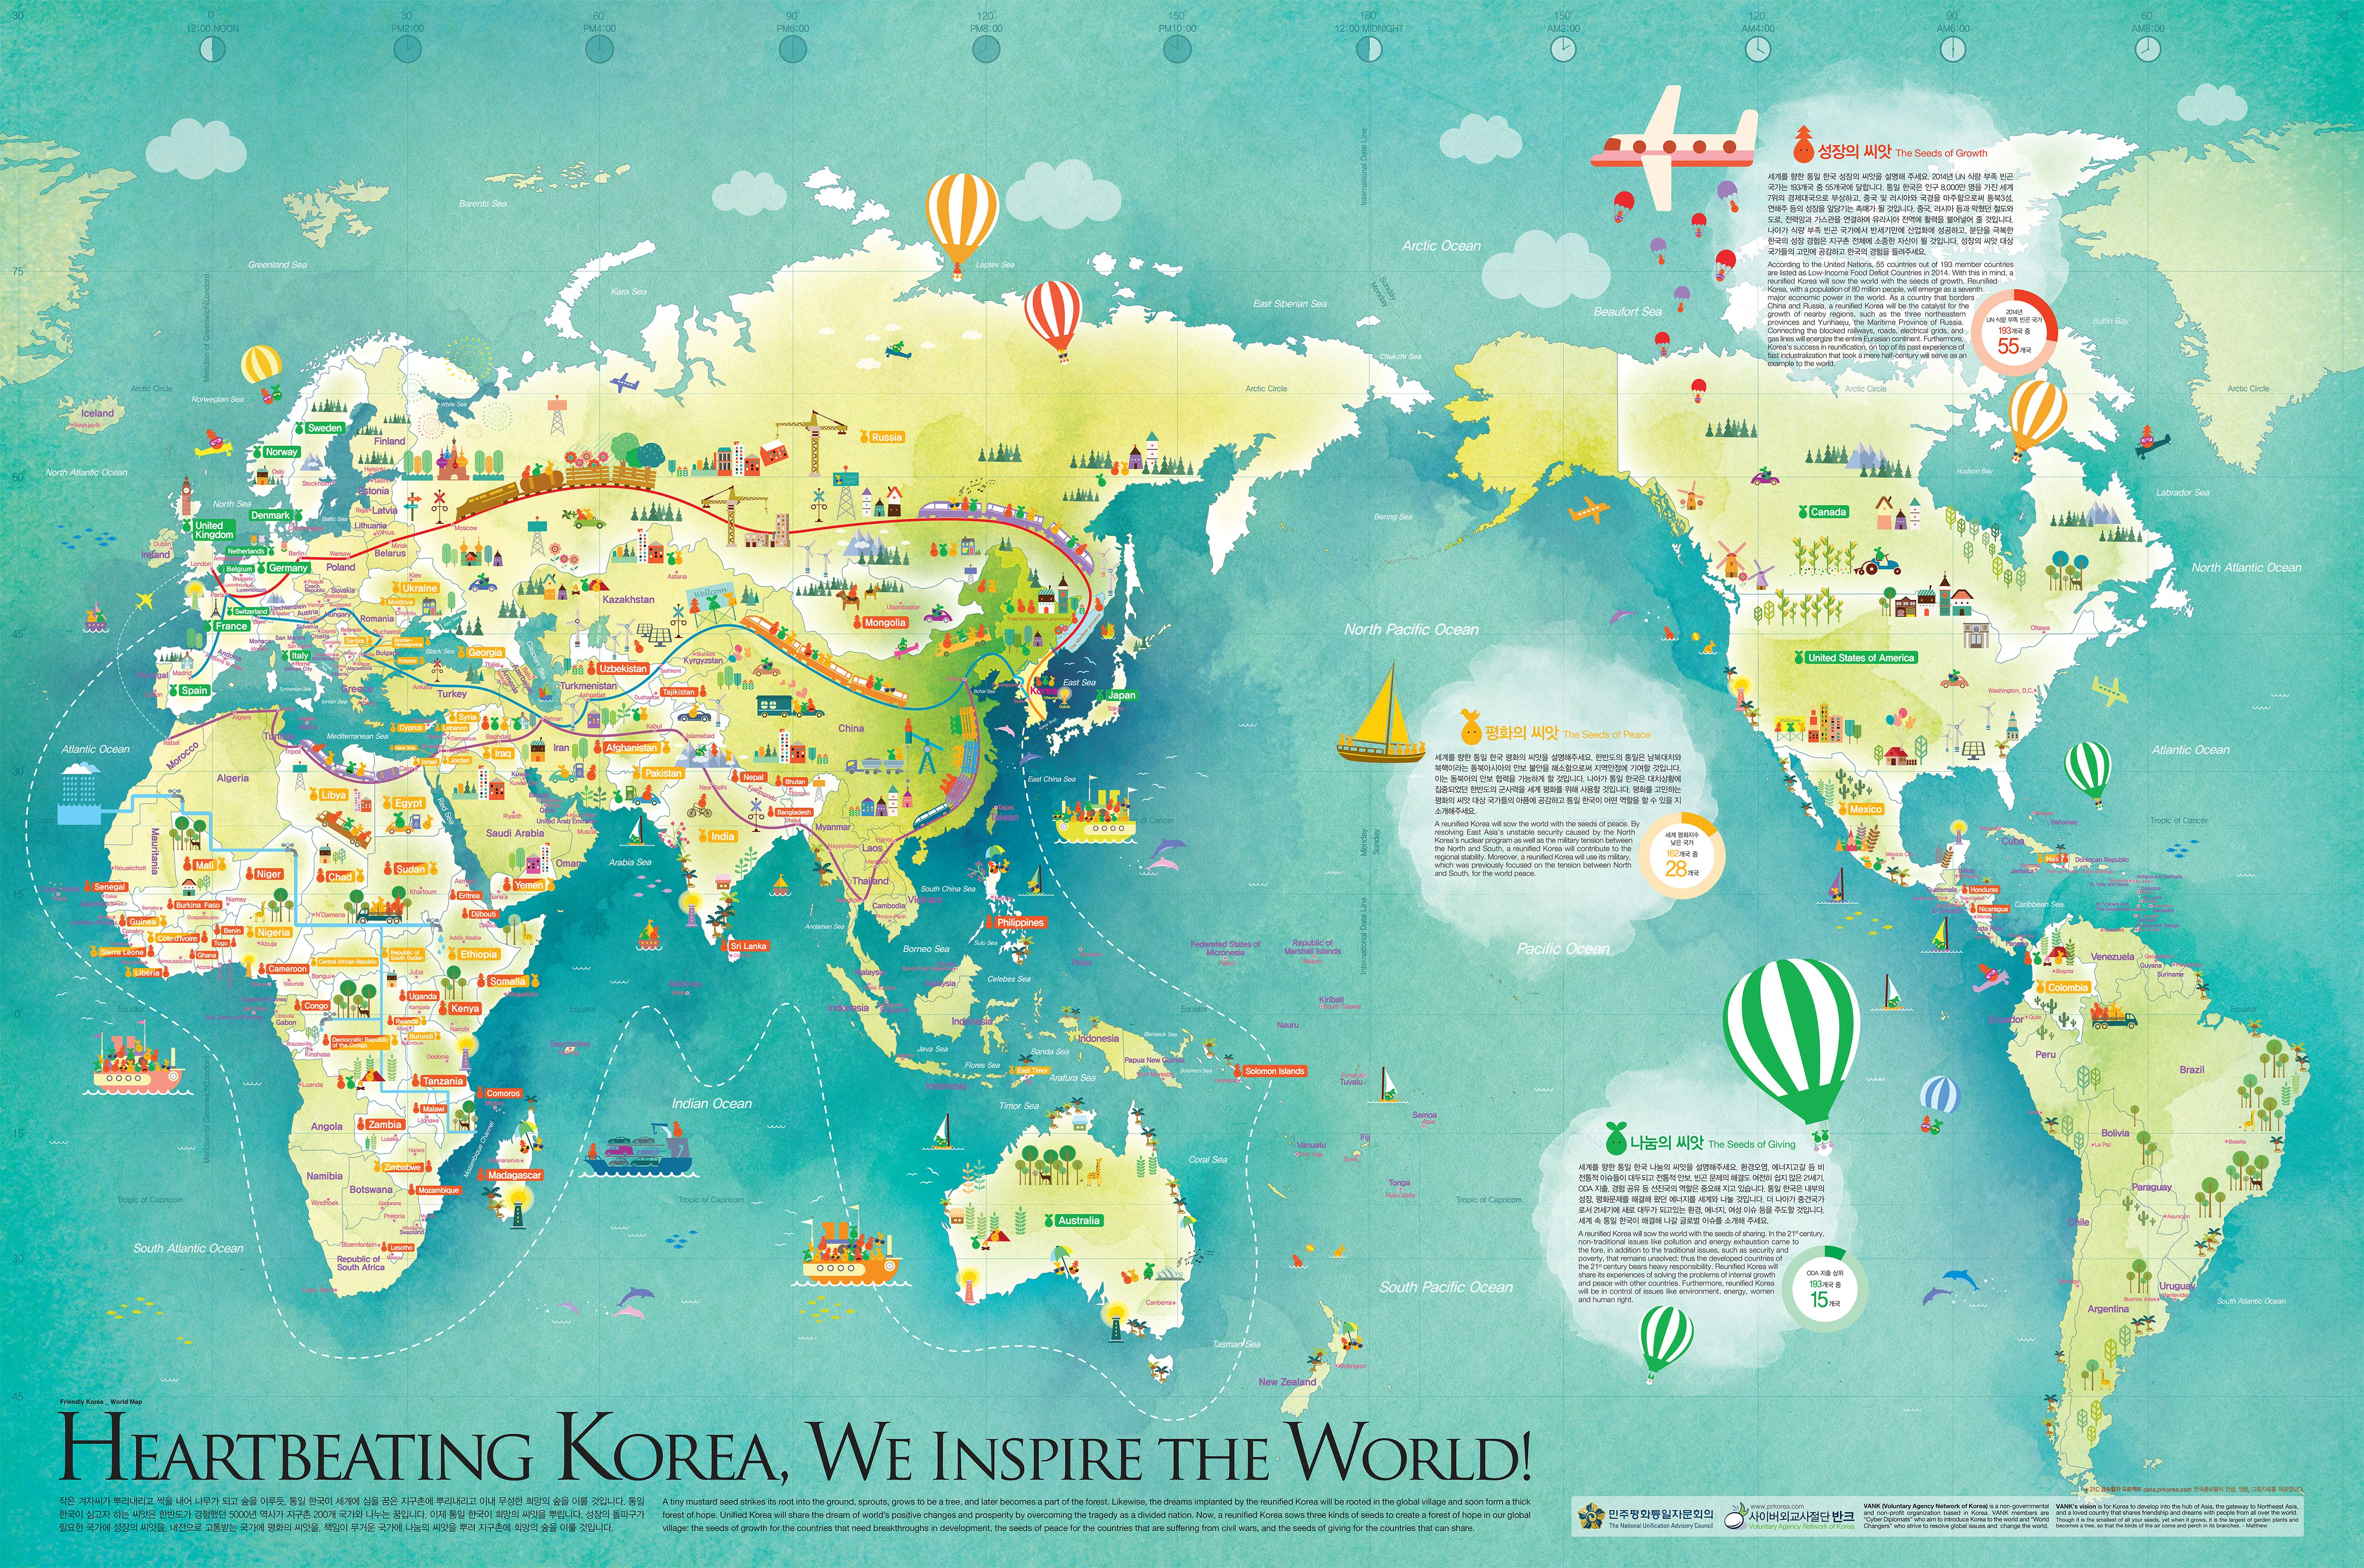 World map in the picture it shows where south and north korea is world map in the picture it shows where south and north korea is in the world map north korea is on the top and south korea is on the bottom gumiabroncs Image collections